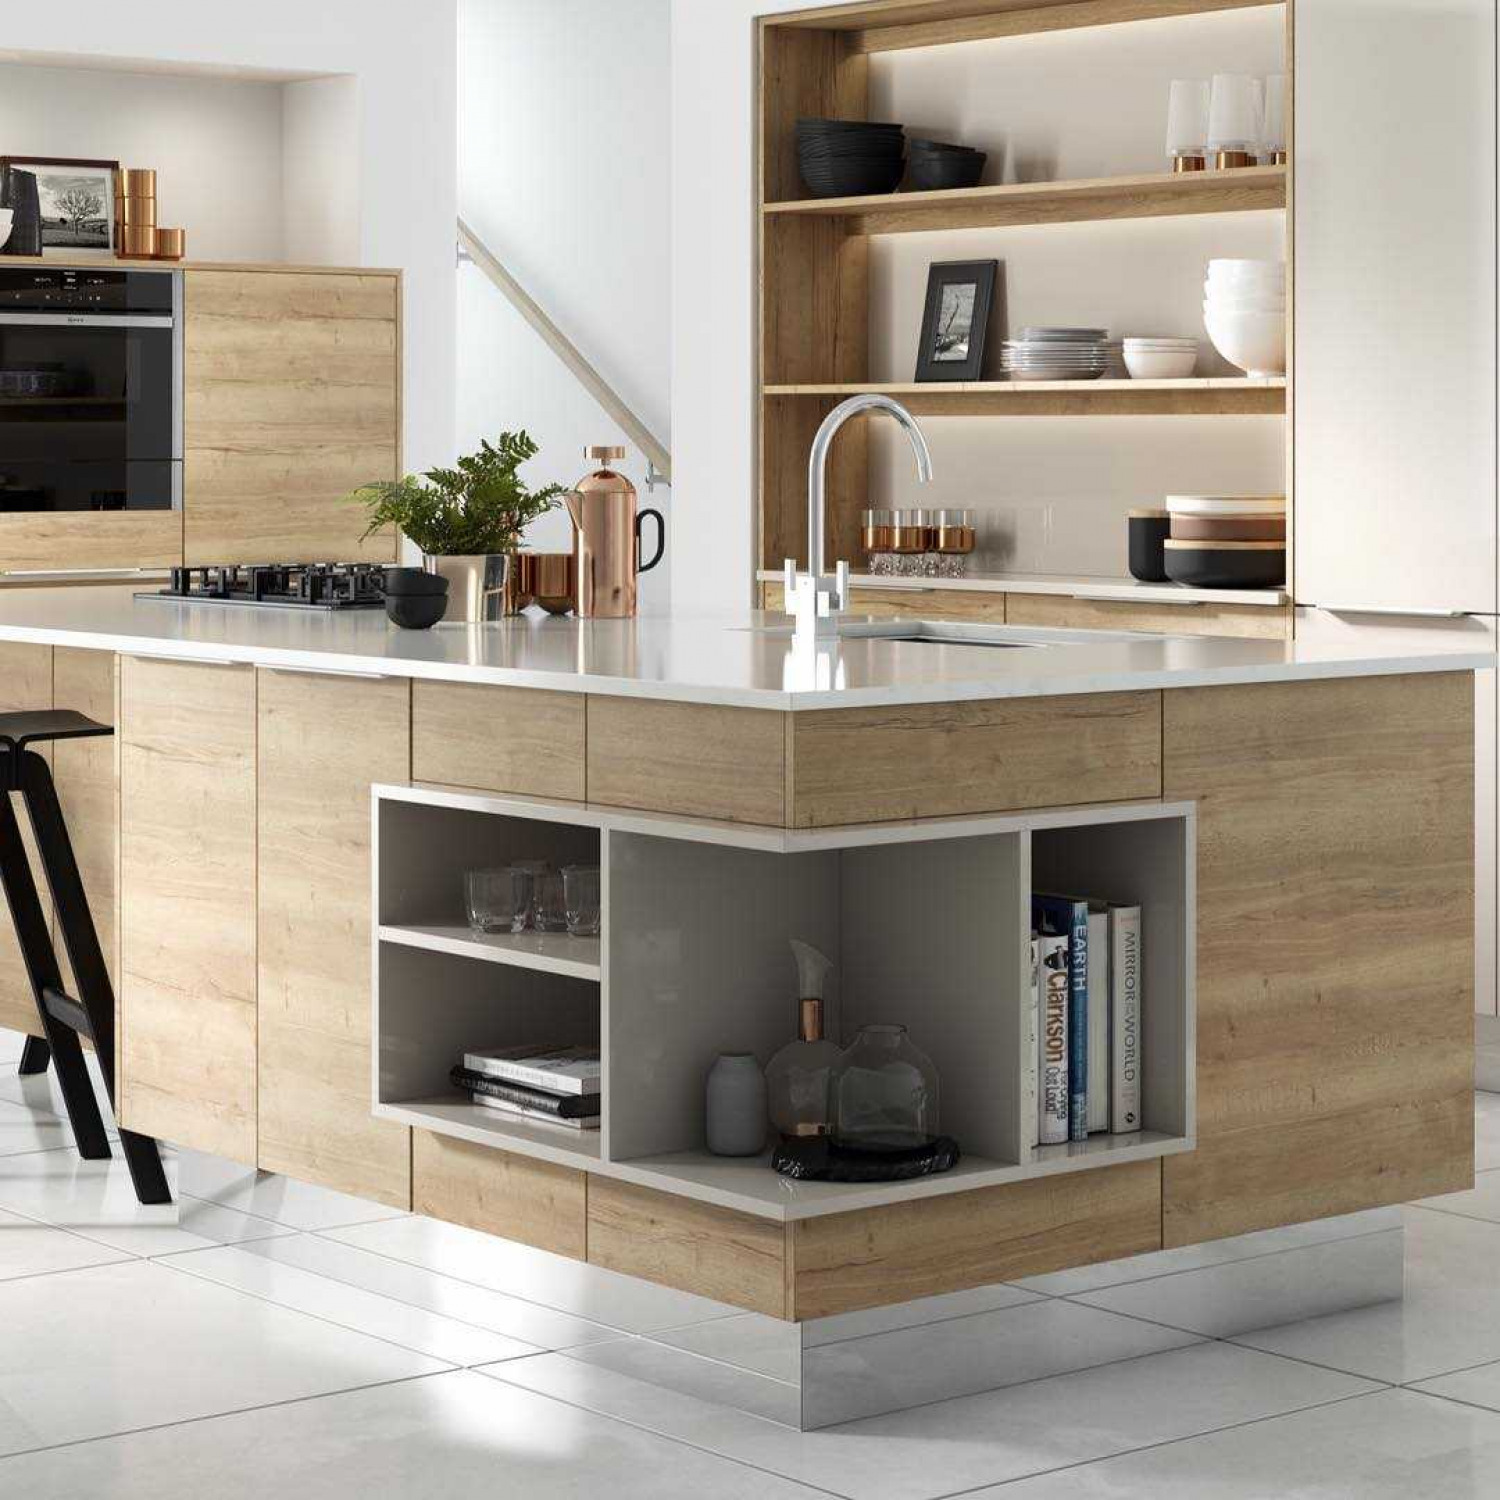 12 Inspiring Kitchen Island Ideas: Kitchen Island Ideas: Inspiration For Your Kitchen